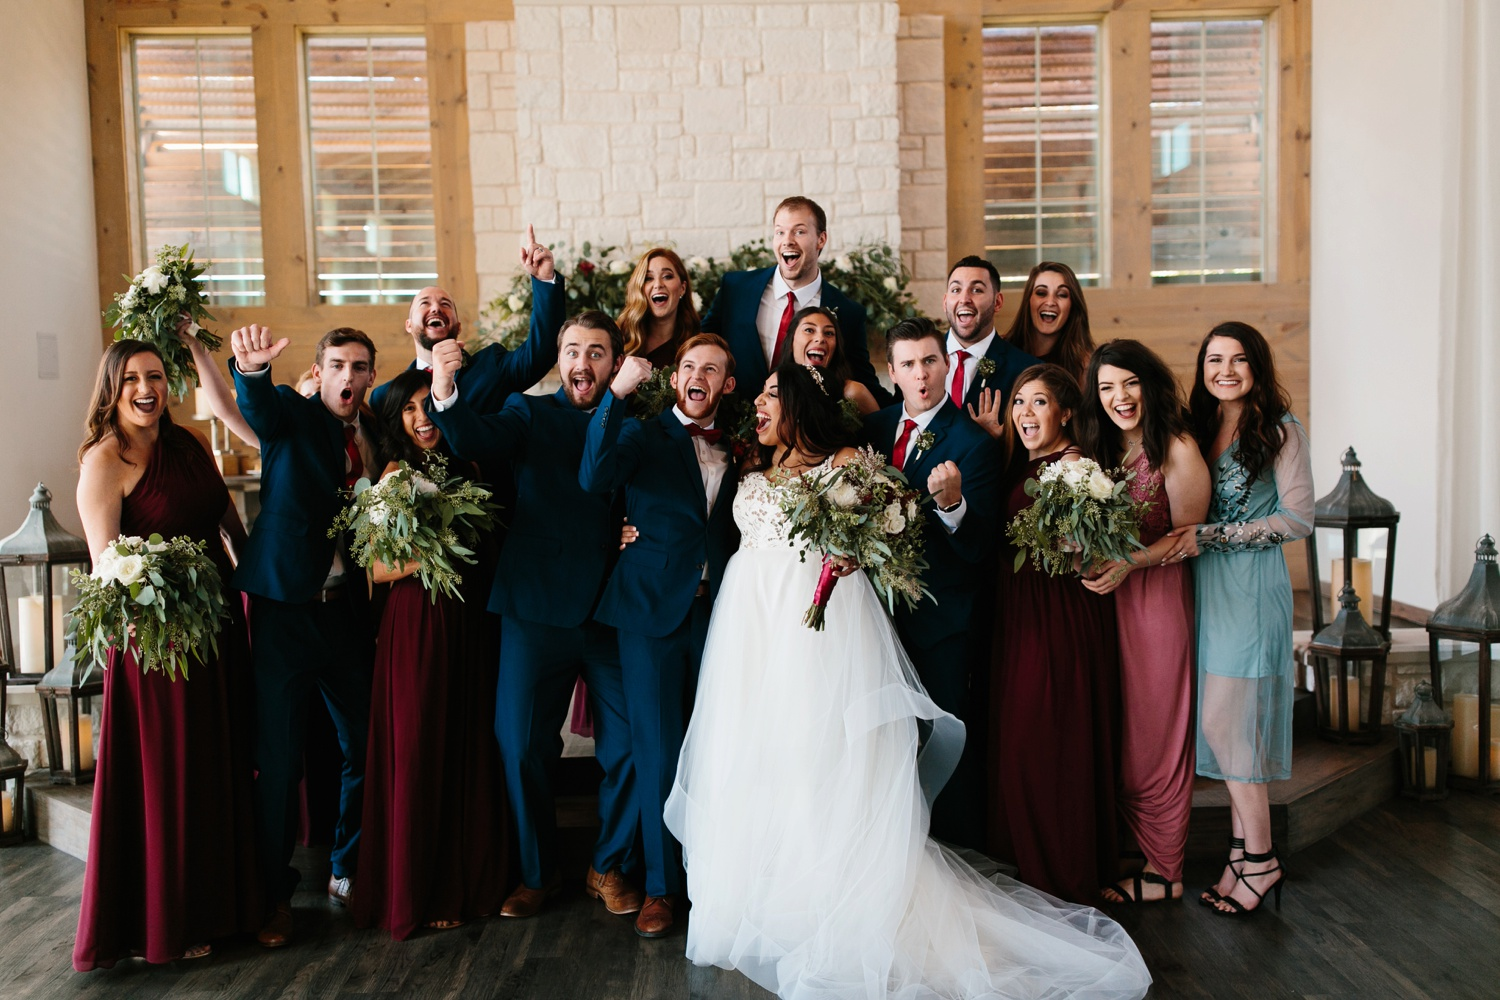 Grant + Lysette | a vibrant, deep burgundy and navy, and mixed metals wedding at Hidden Pines Chapel by North Texas Wedding Photographer Rachel Meagan Photography 125